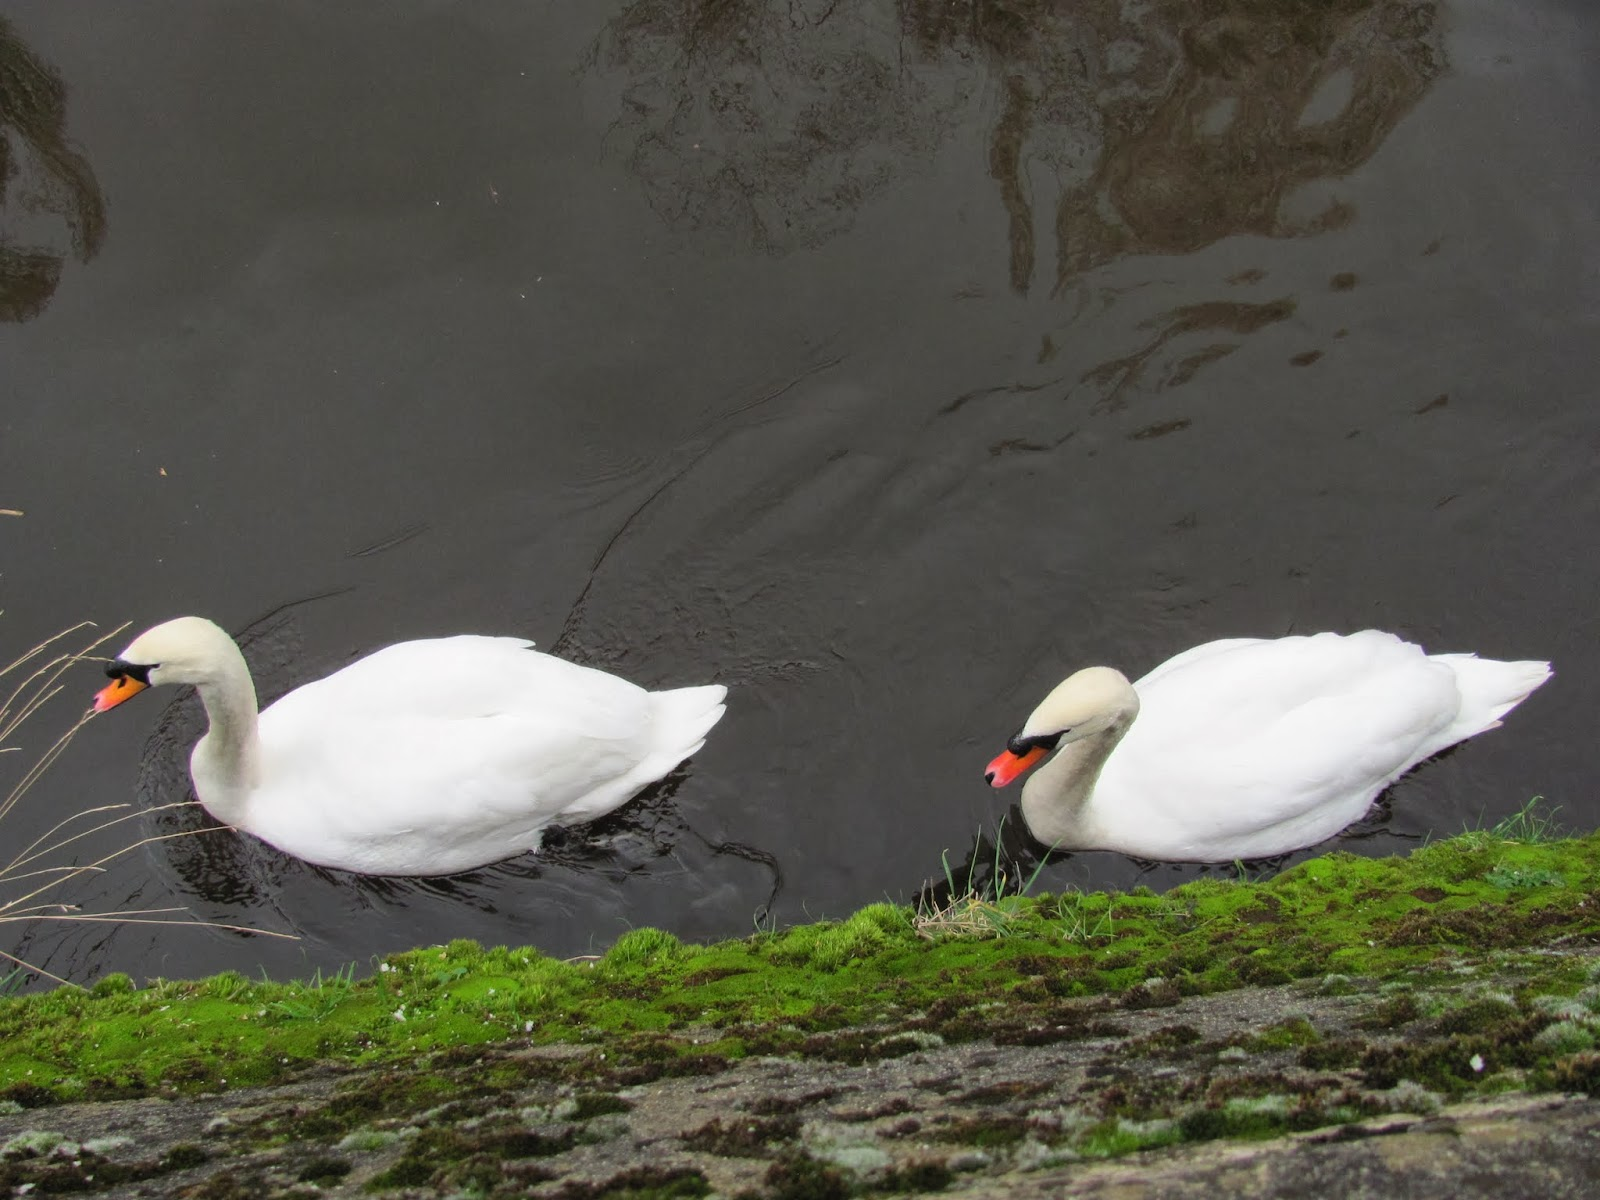 Swans in the Dodder in Dublin